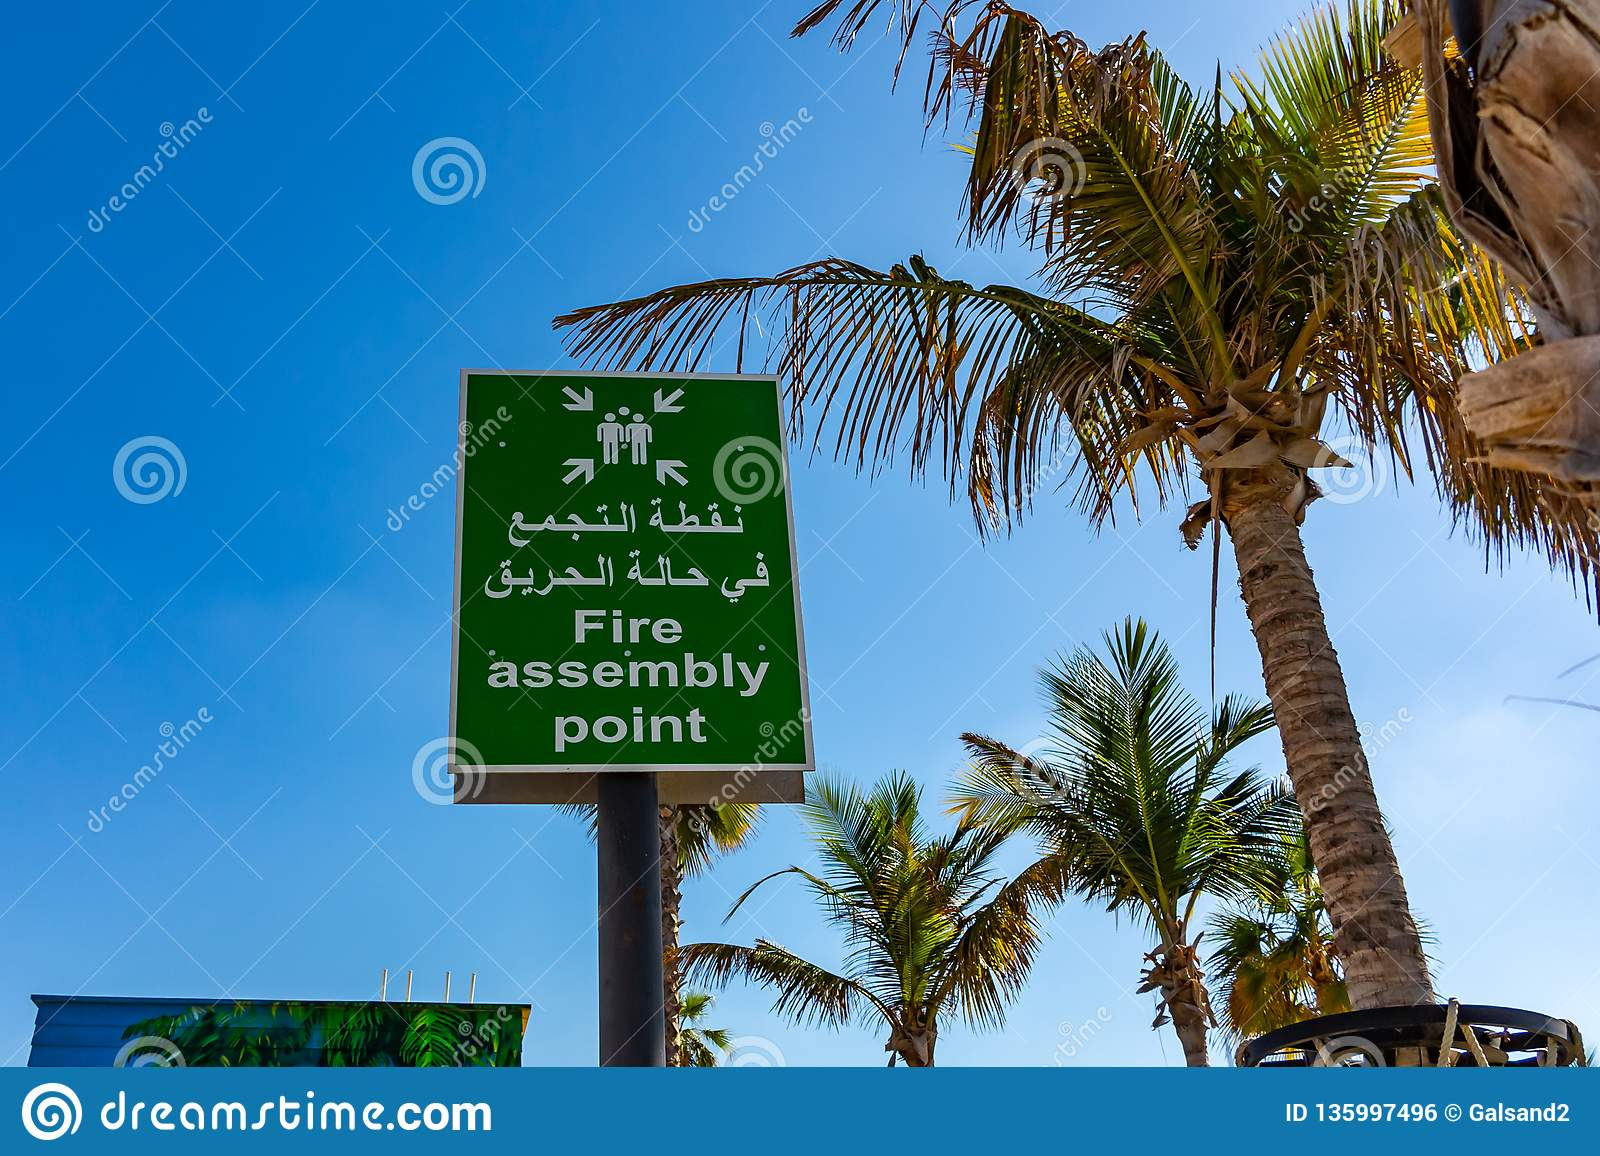 Dubai, United Arab Emirates - December 12, 2018: Fire Assembly Point Sign in Arabic and English